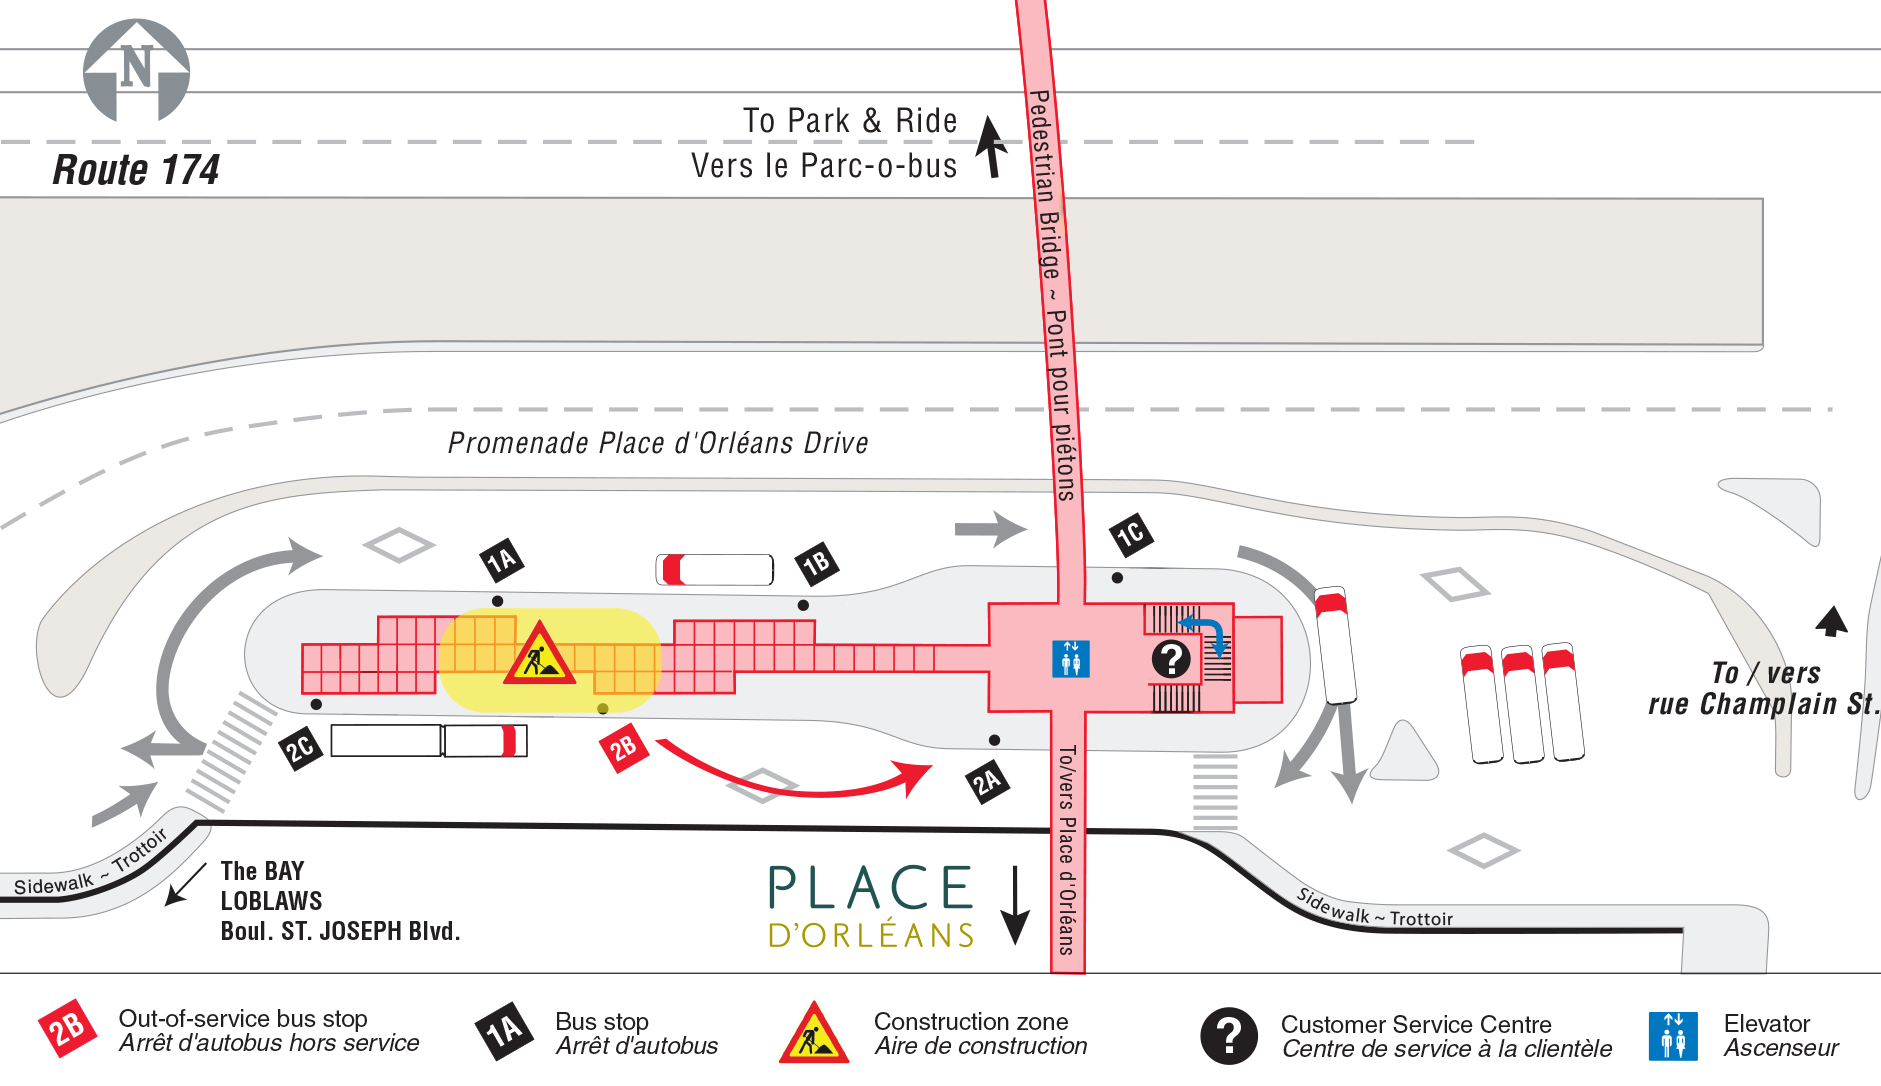 Map of Place d'Orléans station during construction